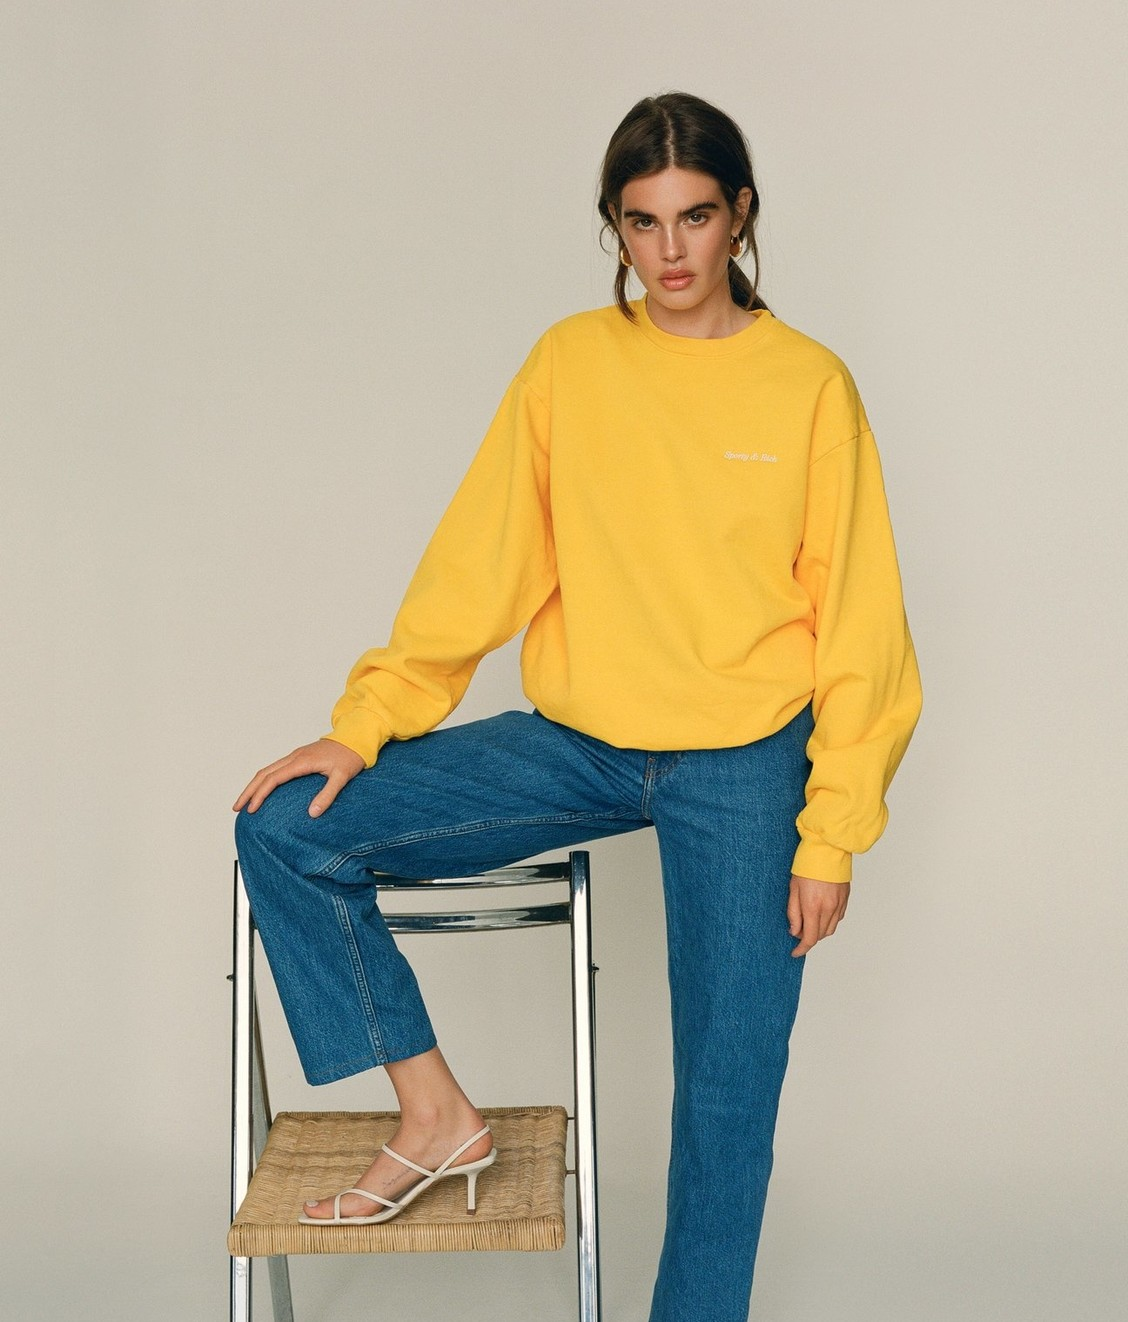 Sporty and Rich Sporty & Rich 14oz. Classic Sweat Sunflower